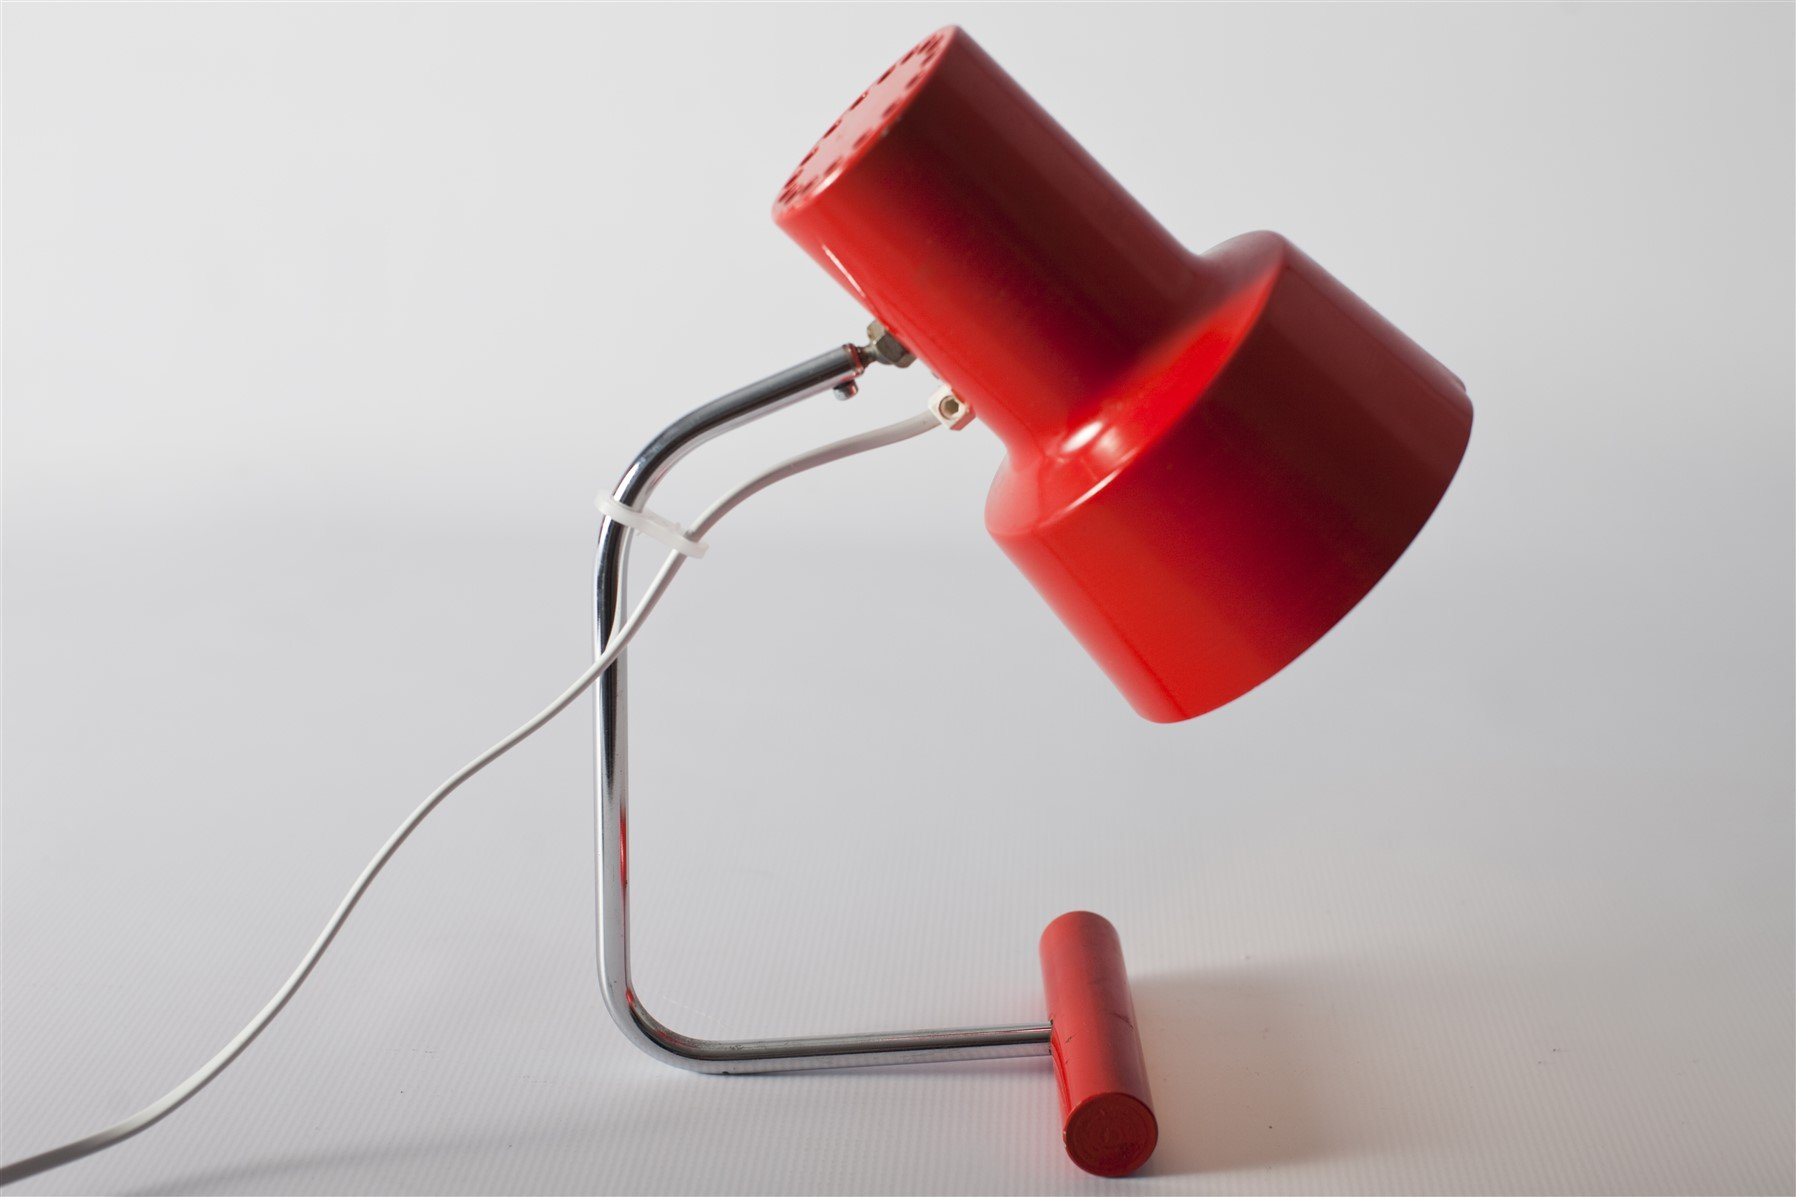 Red table lamp by josef hurka for napako 1960s for sale at pamono red table lamp by josef hurka for napako 1960s mozeypictures